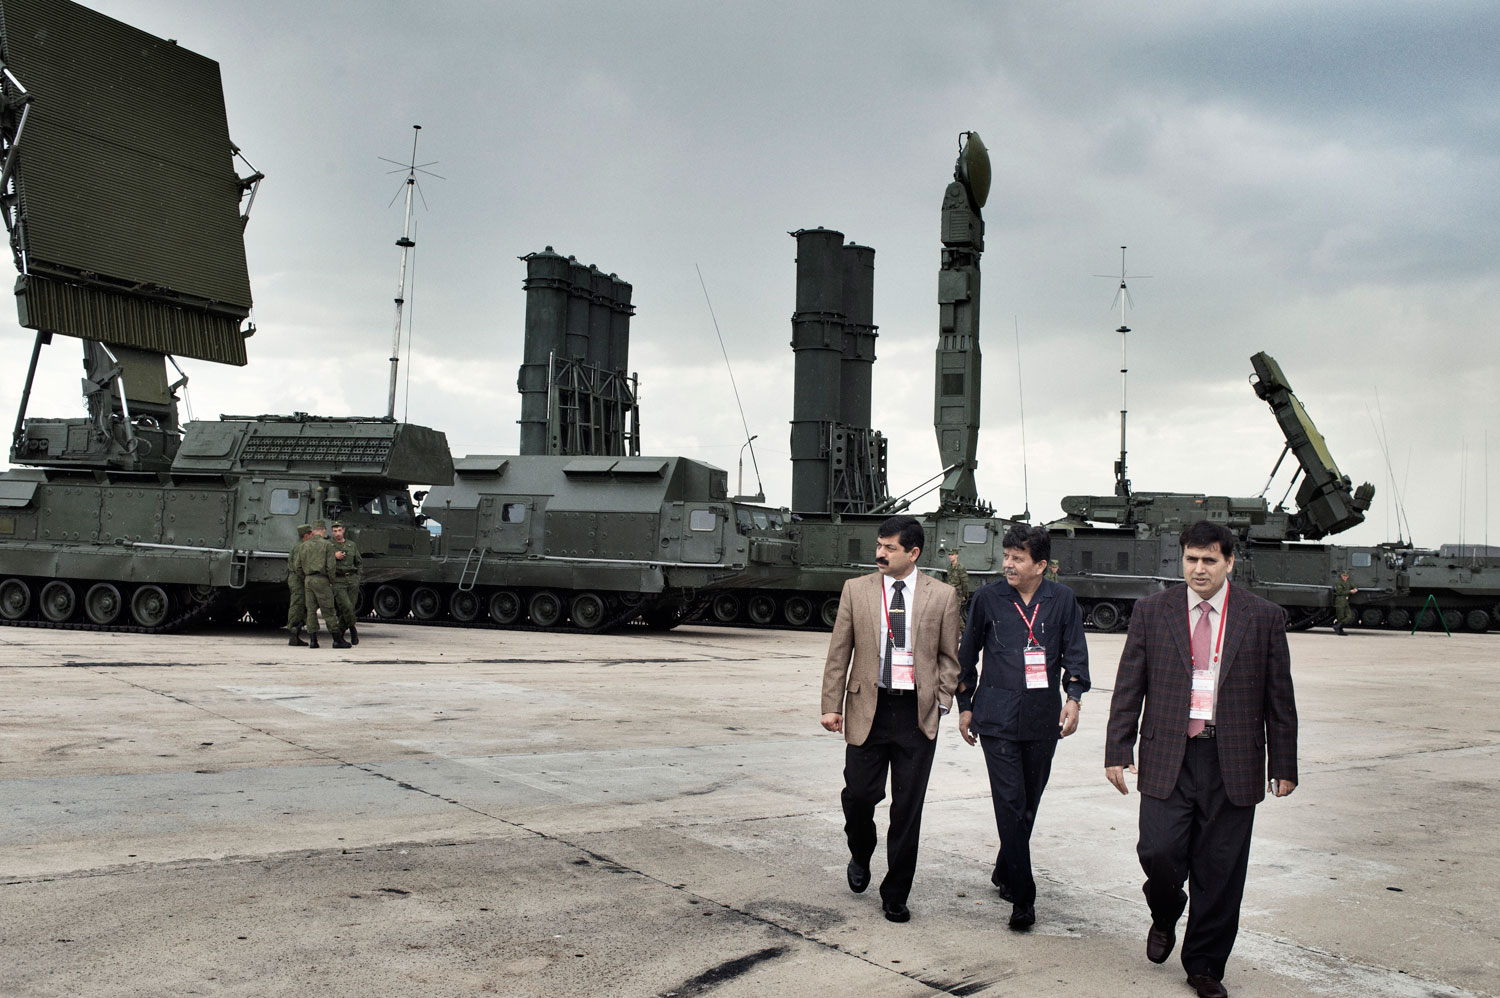 Delegates from Pakistan walk among Russian military equipment.